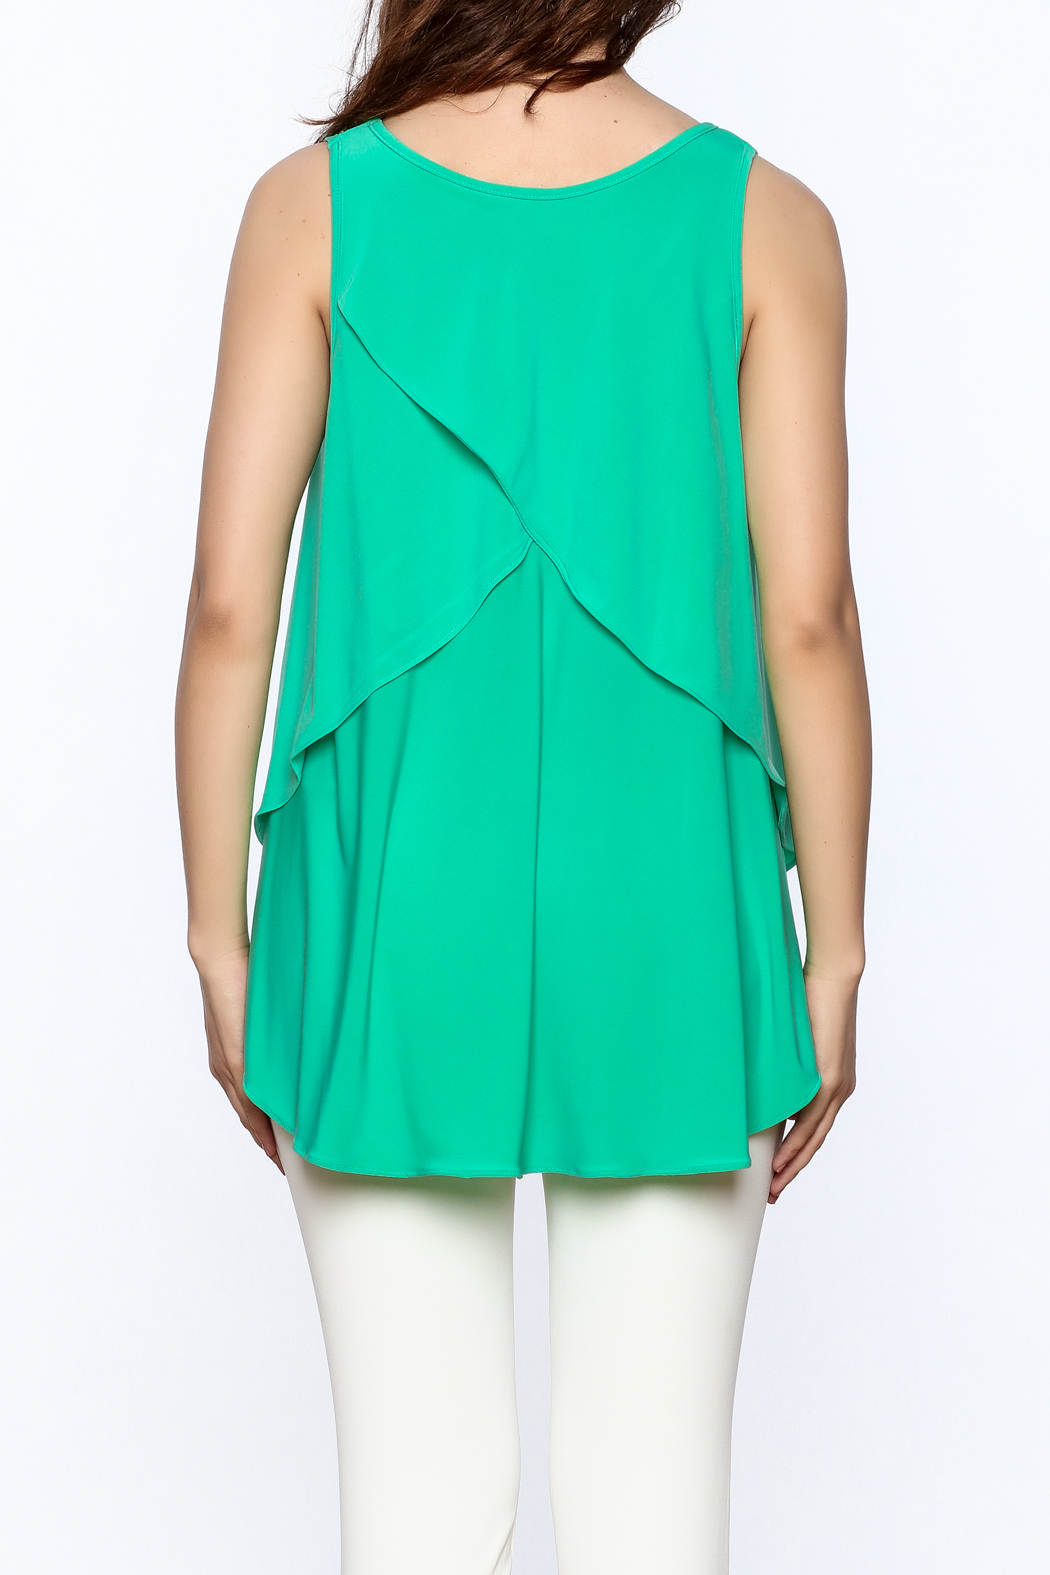 Sharon Max Green Sleeveless Swing Top - Back Cropped Image